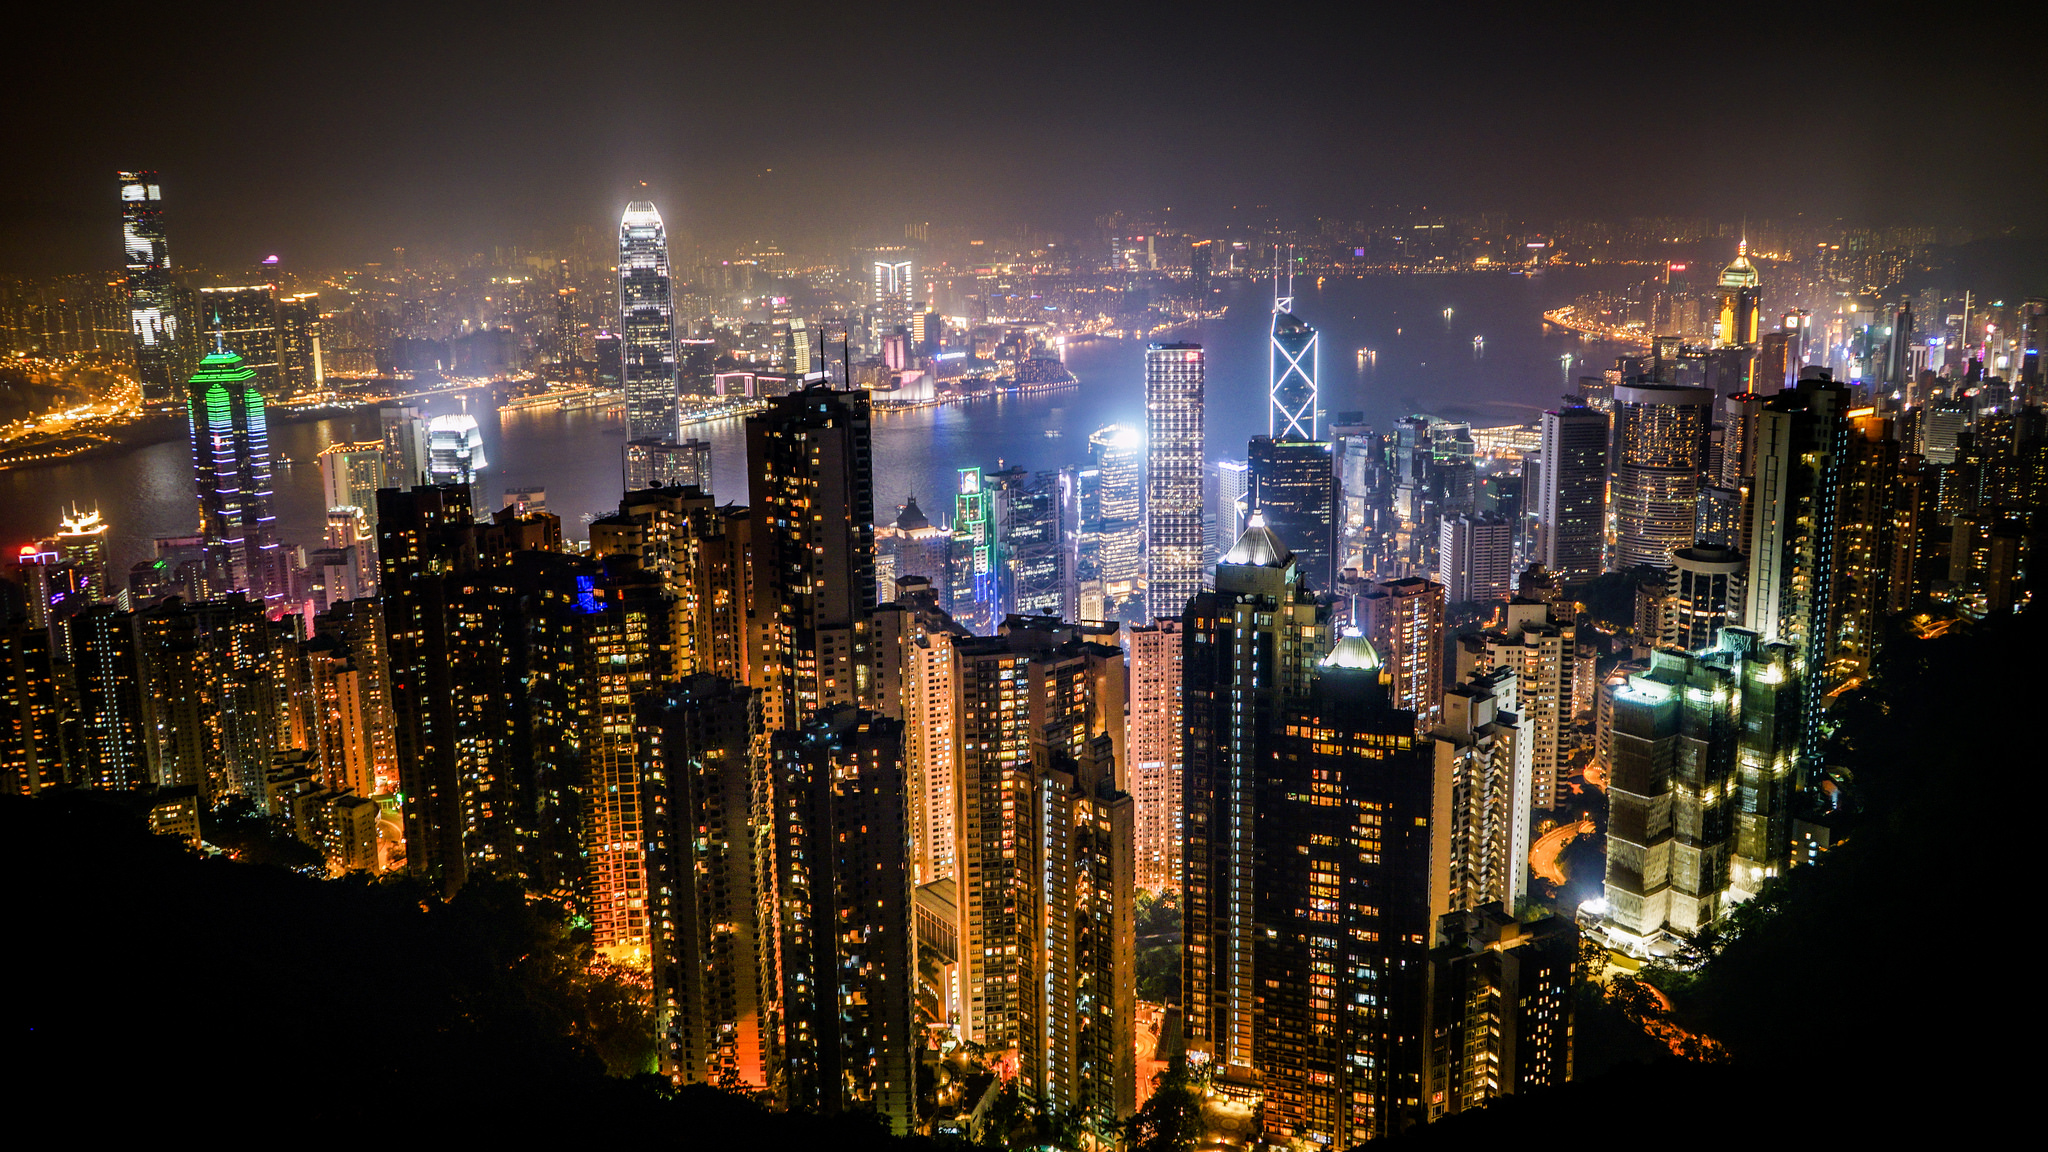 The Most Beautiful Spots To Take Photos In Hong Kong